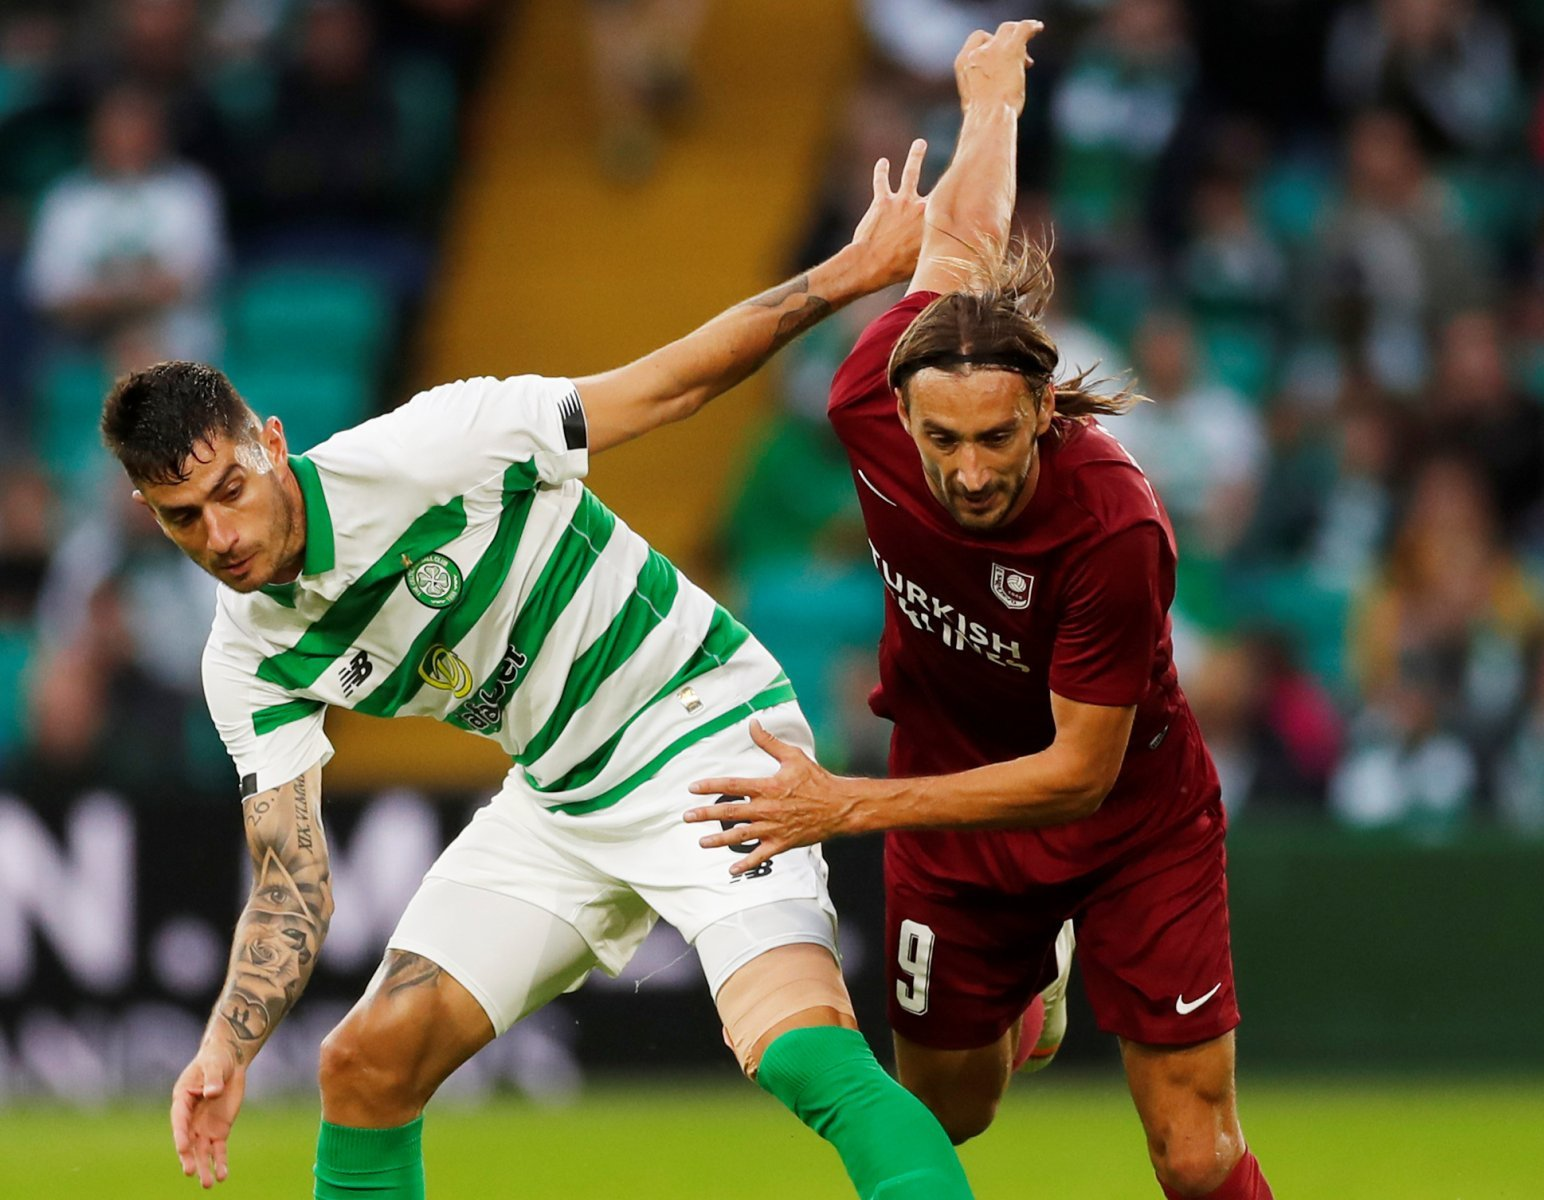 Celtic: Fans send birthday wishes to Nir Bitton and call for new contract